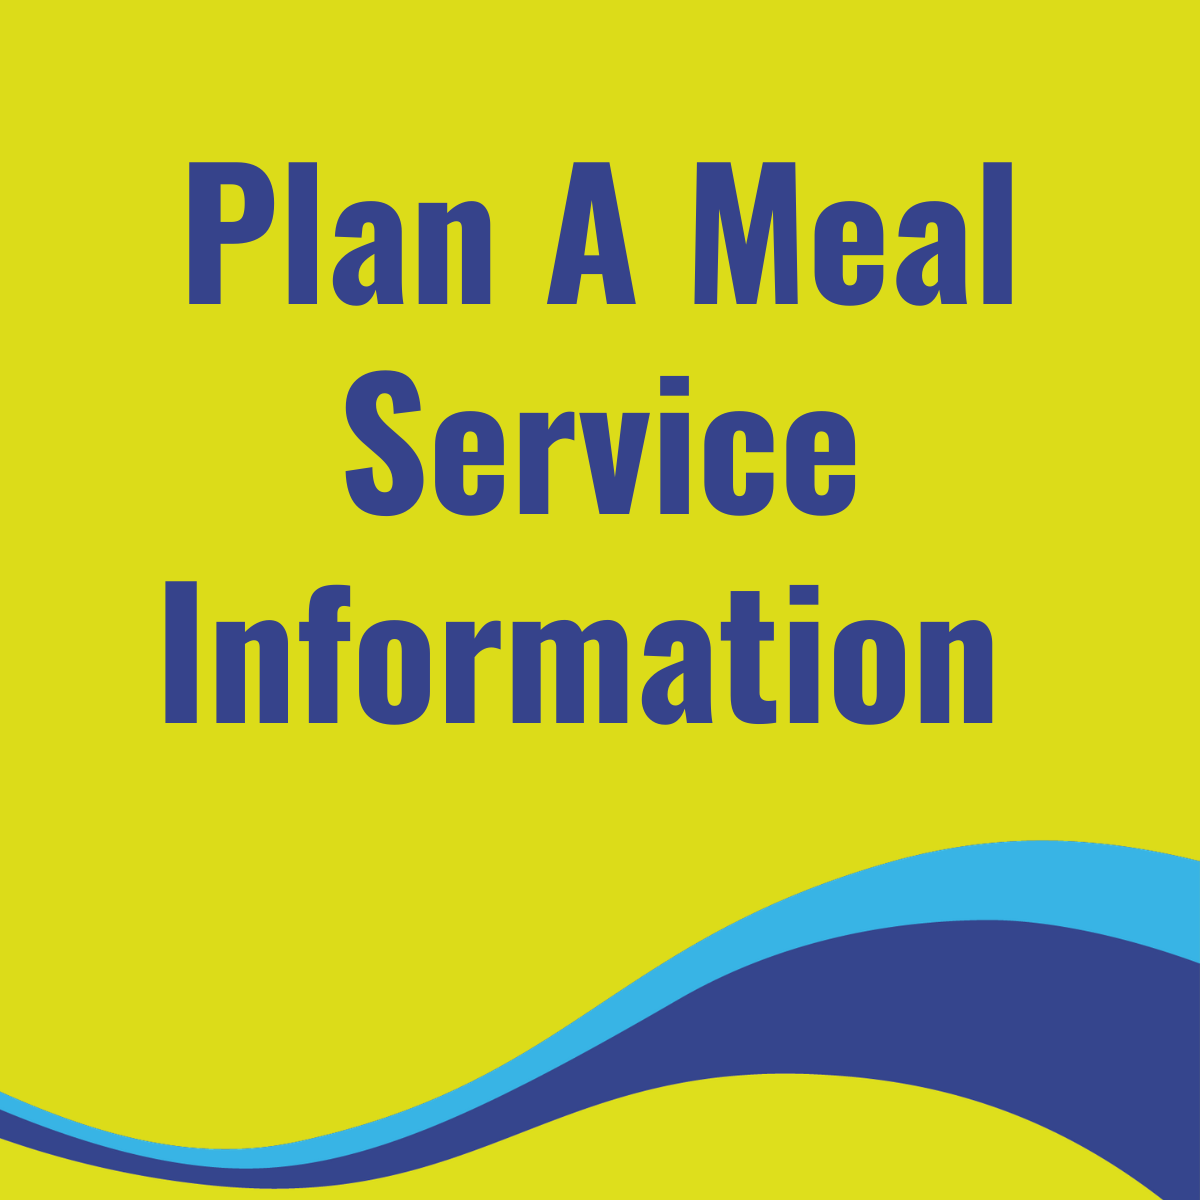 Plan A Meal Service Information